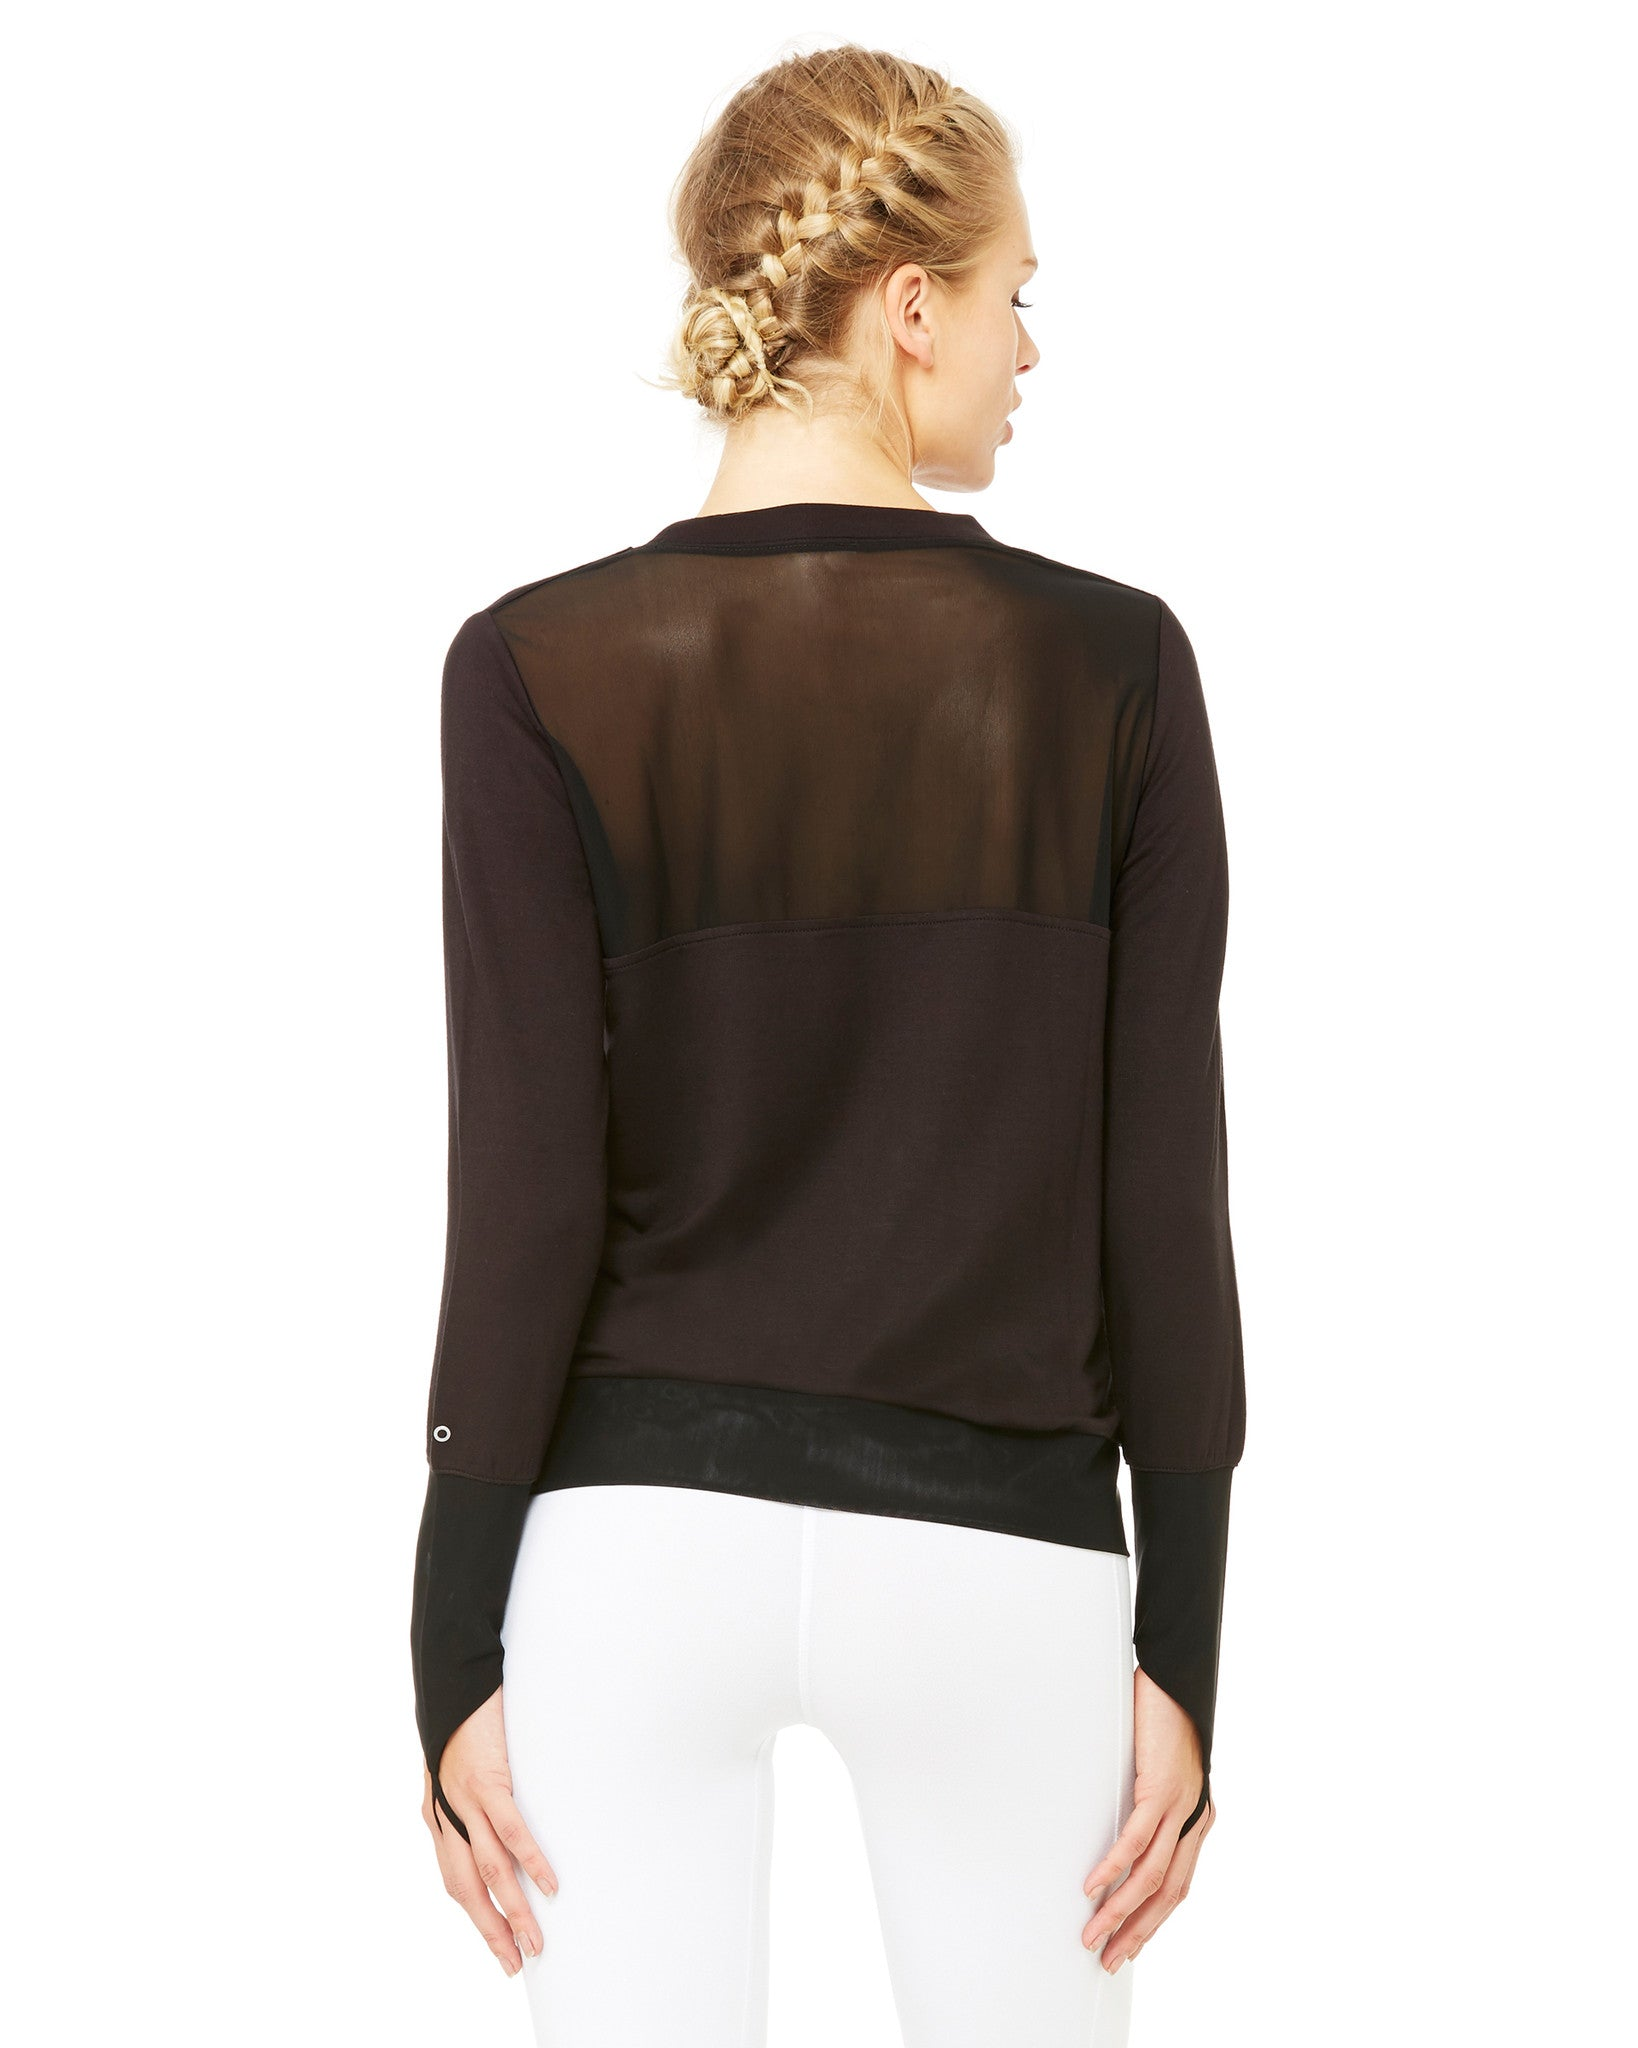 Serene Long Sleeve Top in Black - AMAIA - 2